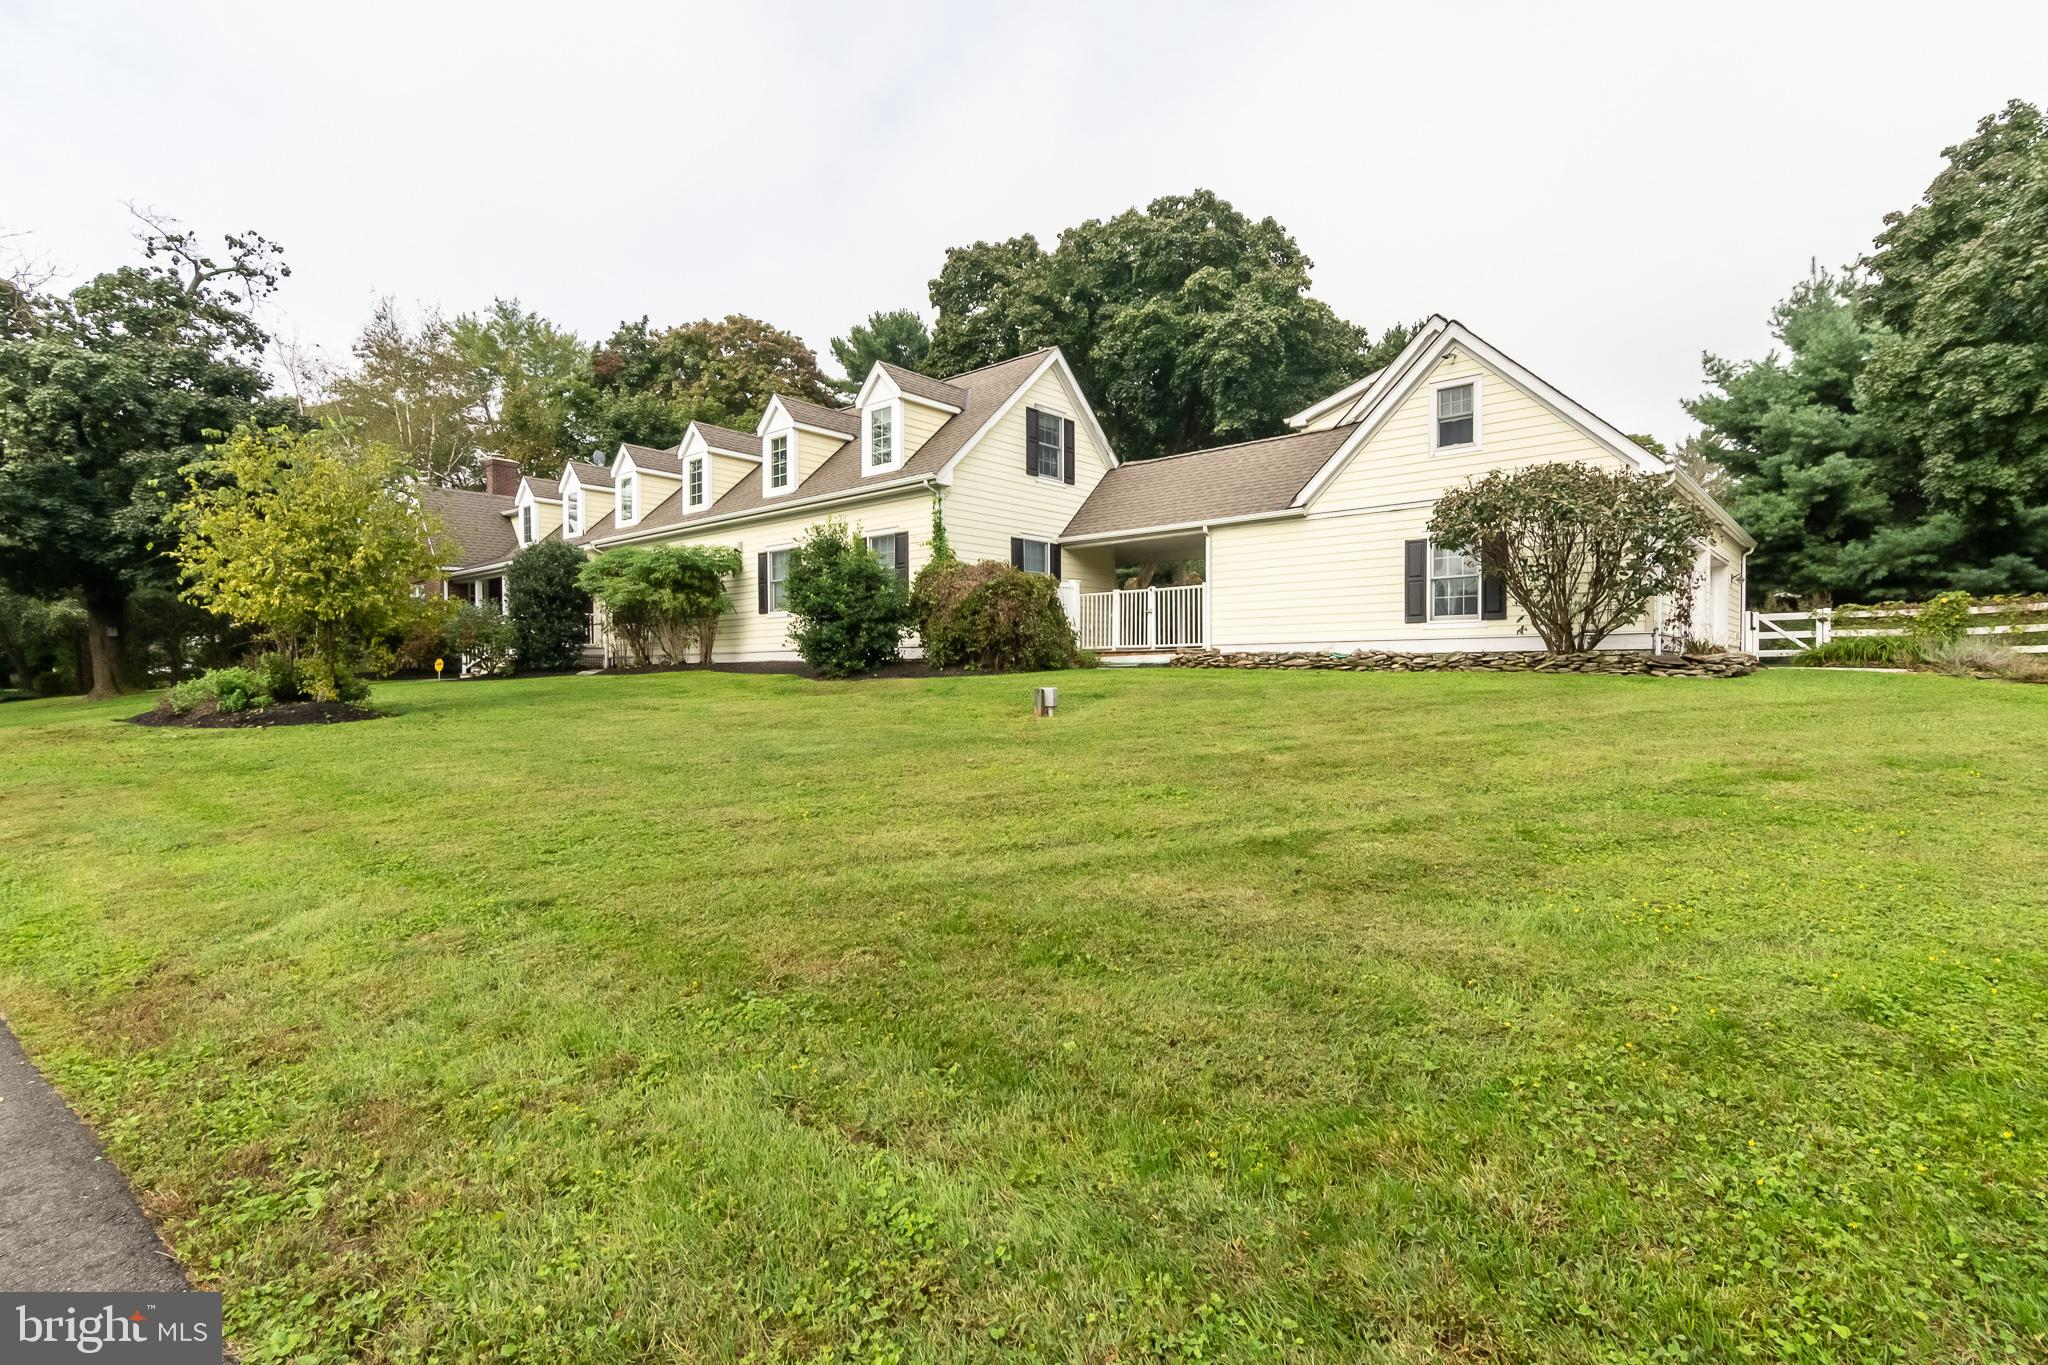 119 GRANDVIEW AVENUE, HOPEWELL, NJ 08525